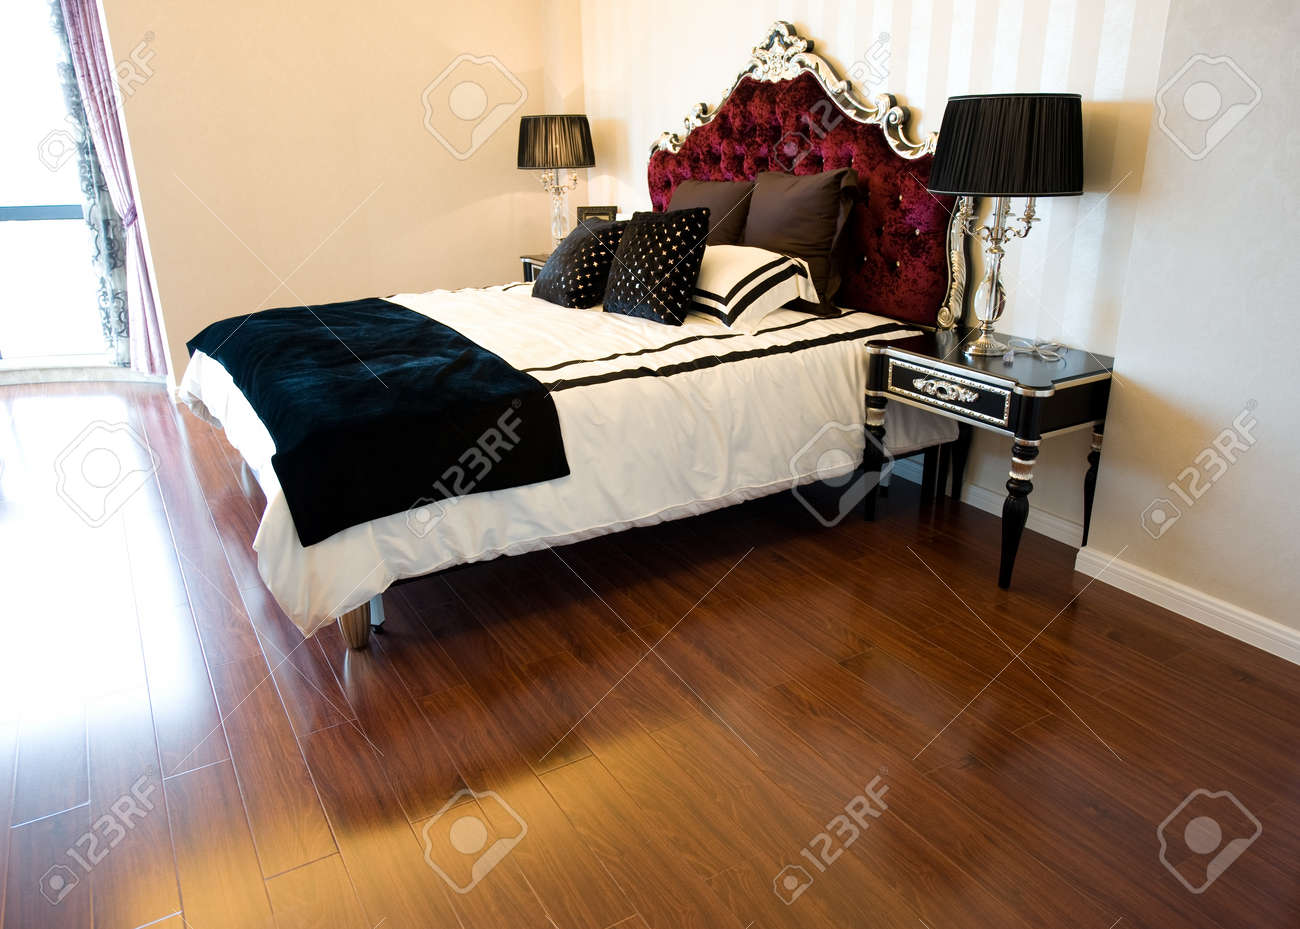 Double bed in the modern interior room stock photo picture and